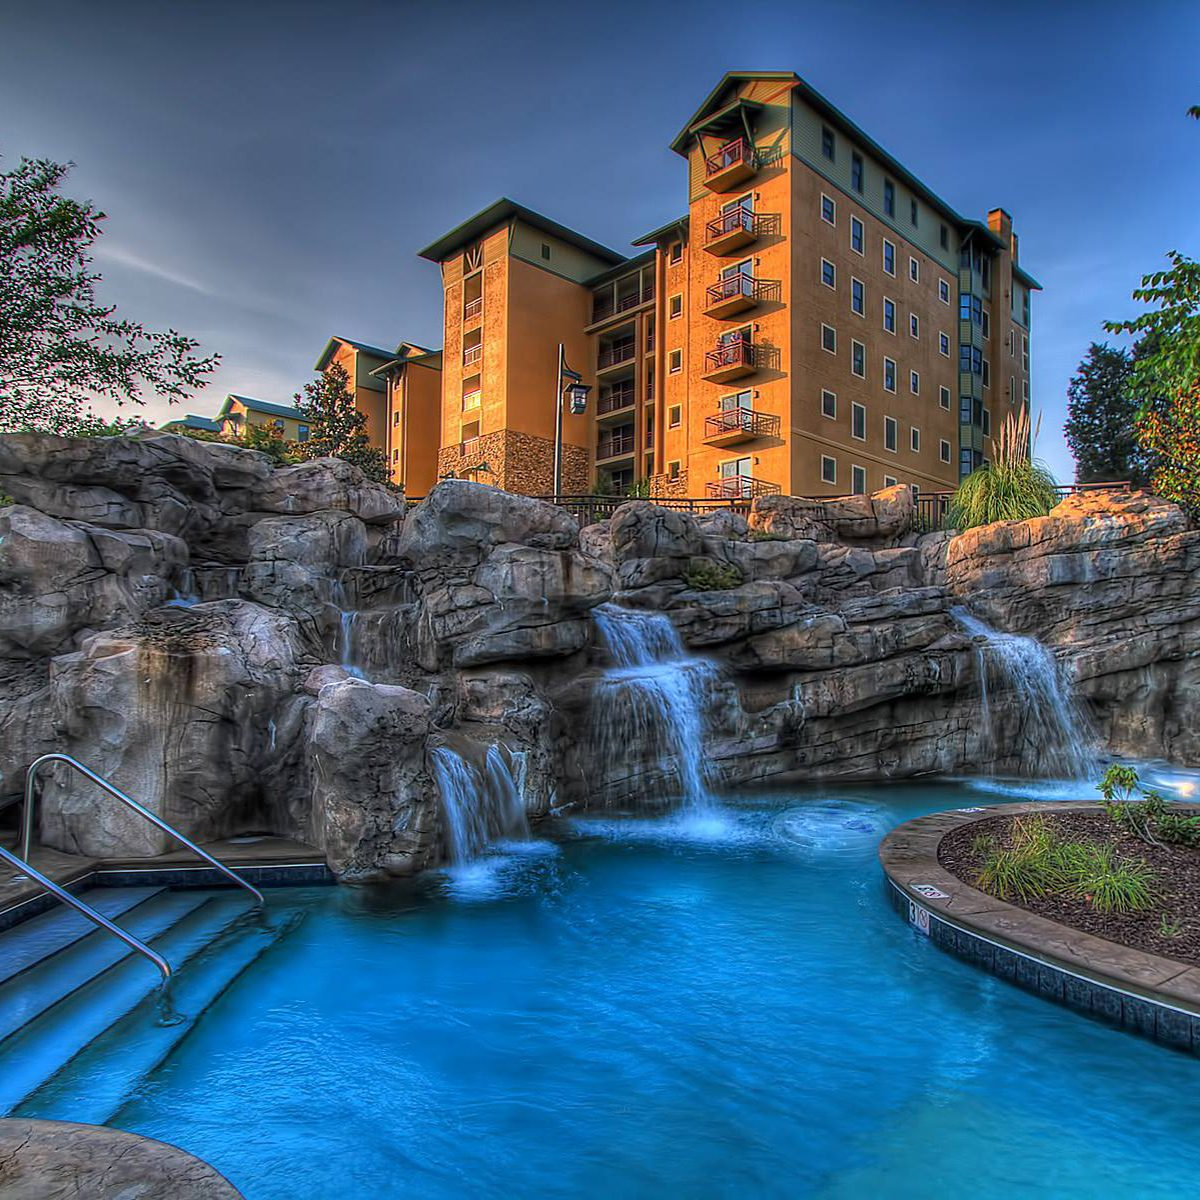 Tennessee RiverStone Resort & Spa